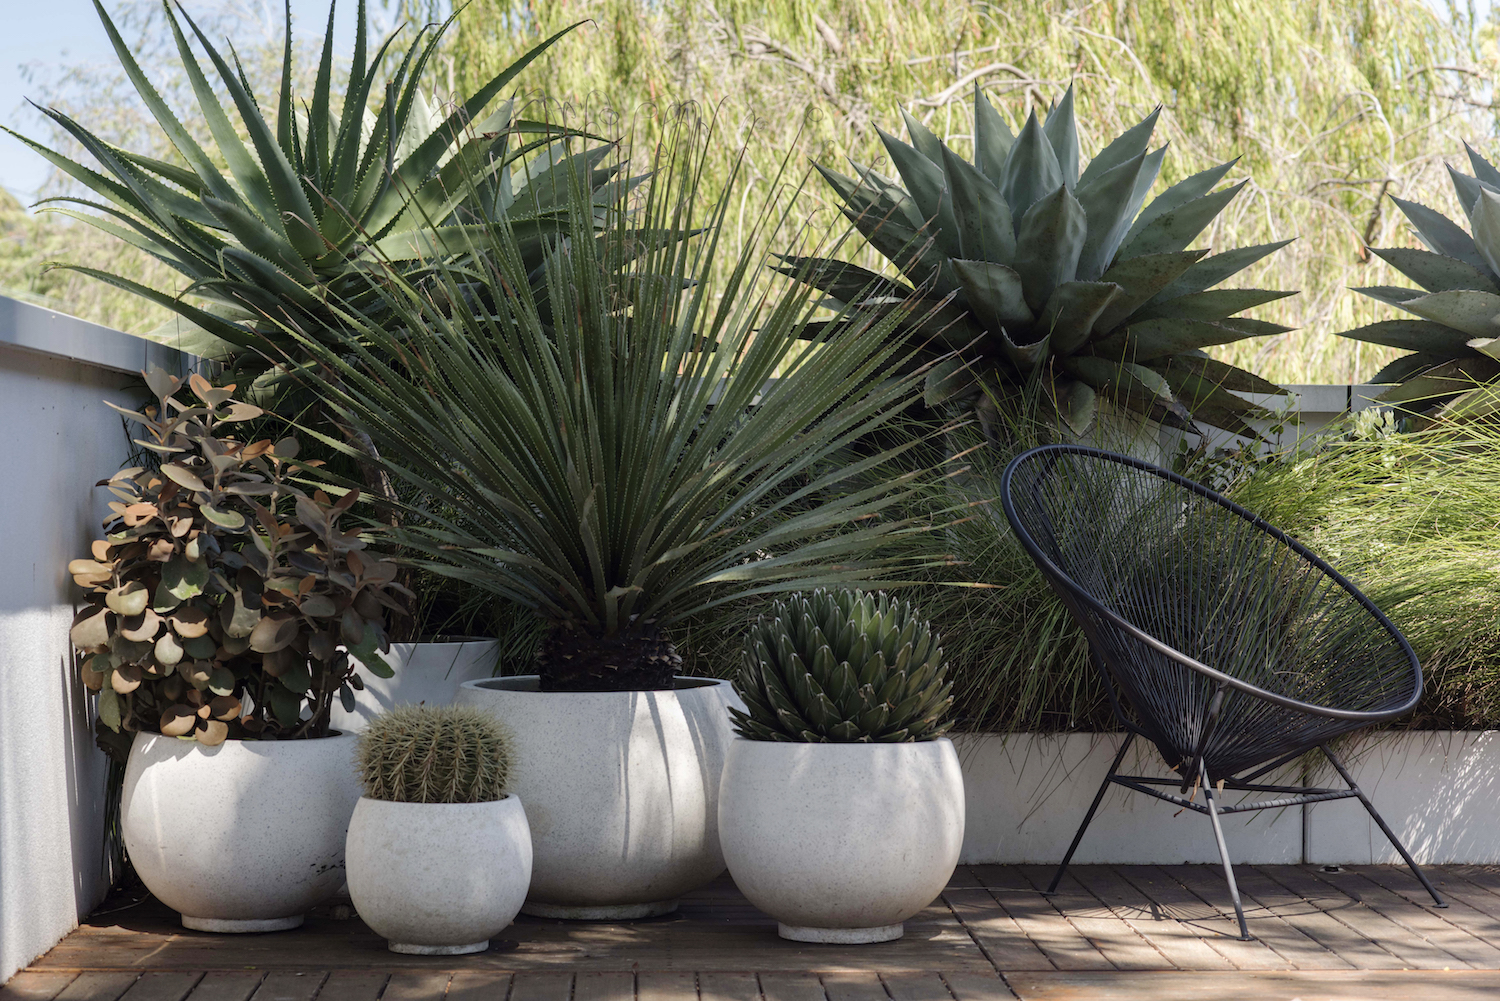 Texas Nativescapes Agaves and Architectural Planters .jpg